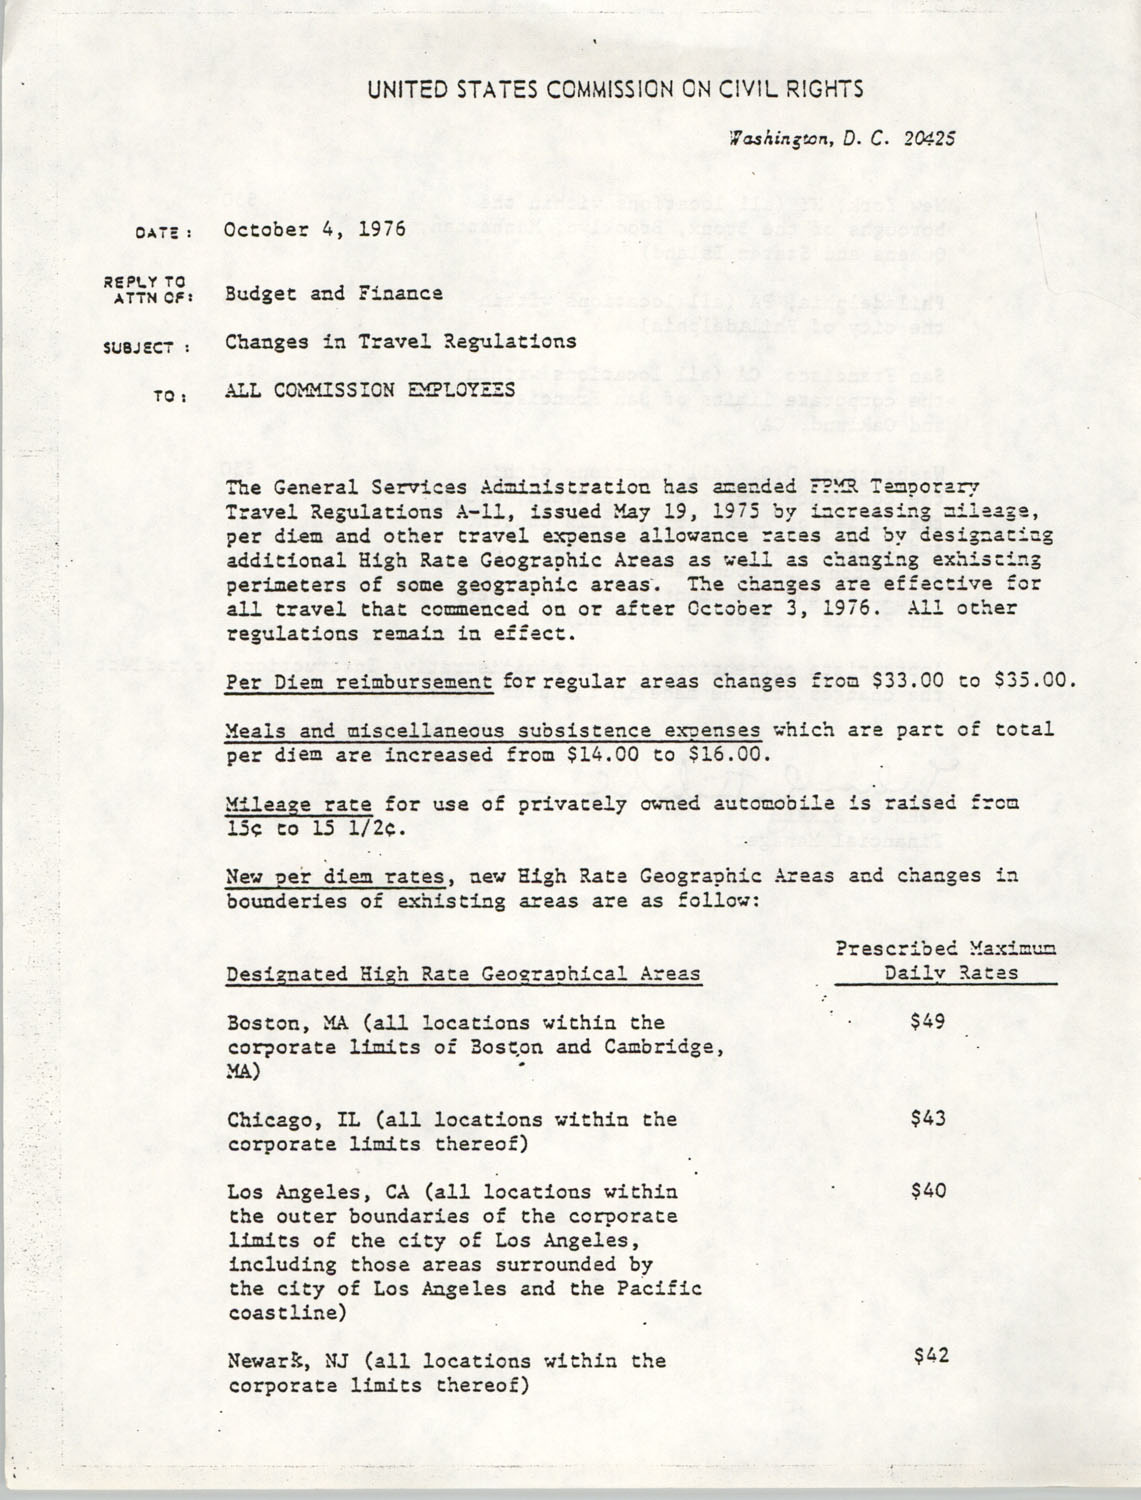 Memorandum, Changes in Travel Regulations, United States Commission on Civil Rights, October 4, 1976